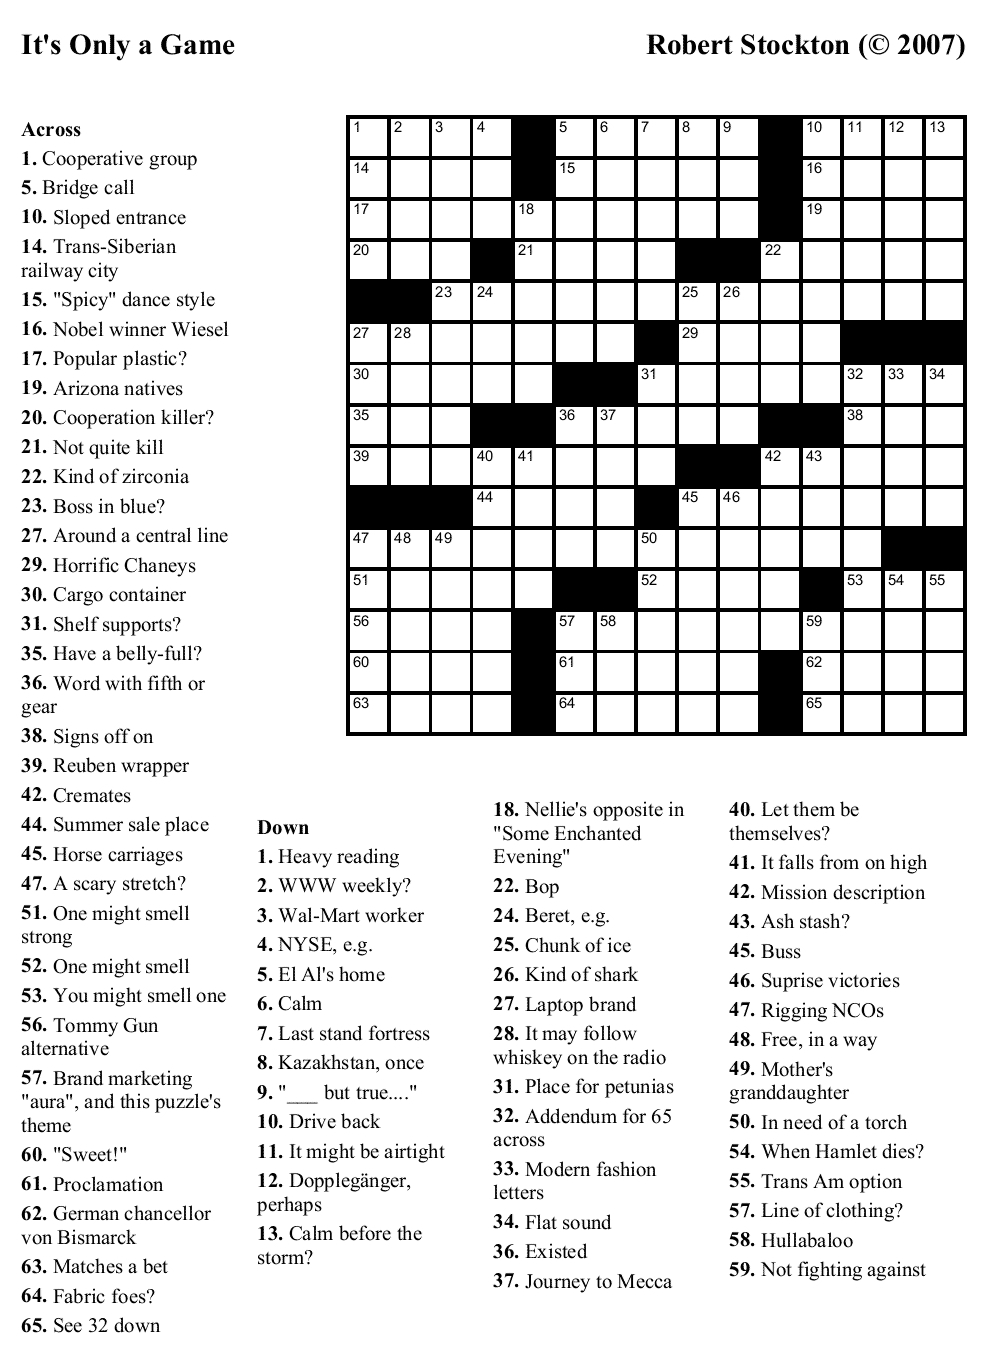 Coloring ~ Coloring Free Large Print Crosswords Easy For Seniors - Printable Thomas Joseph Crossword Puzzle For Today